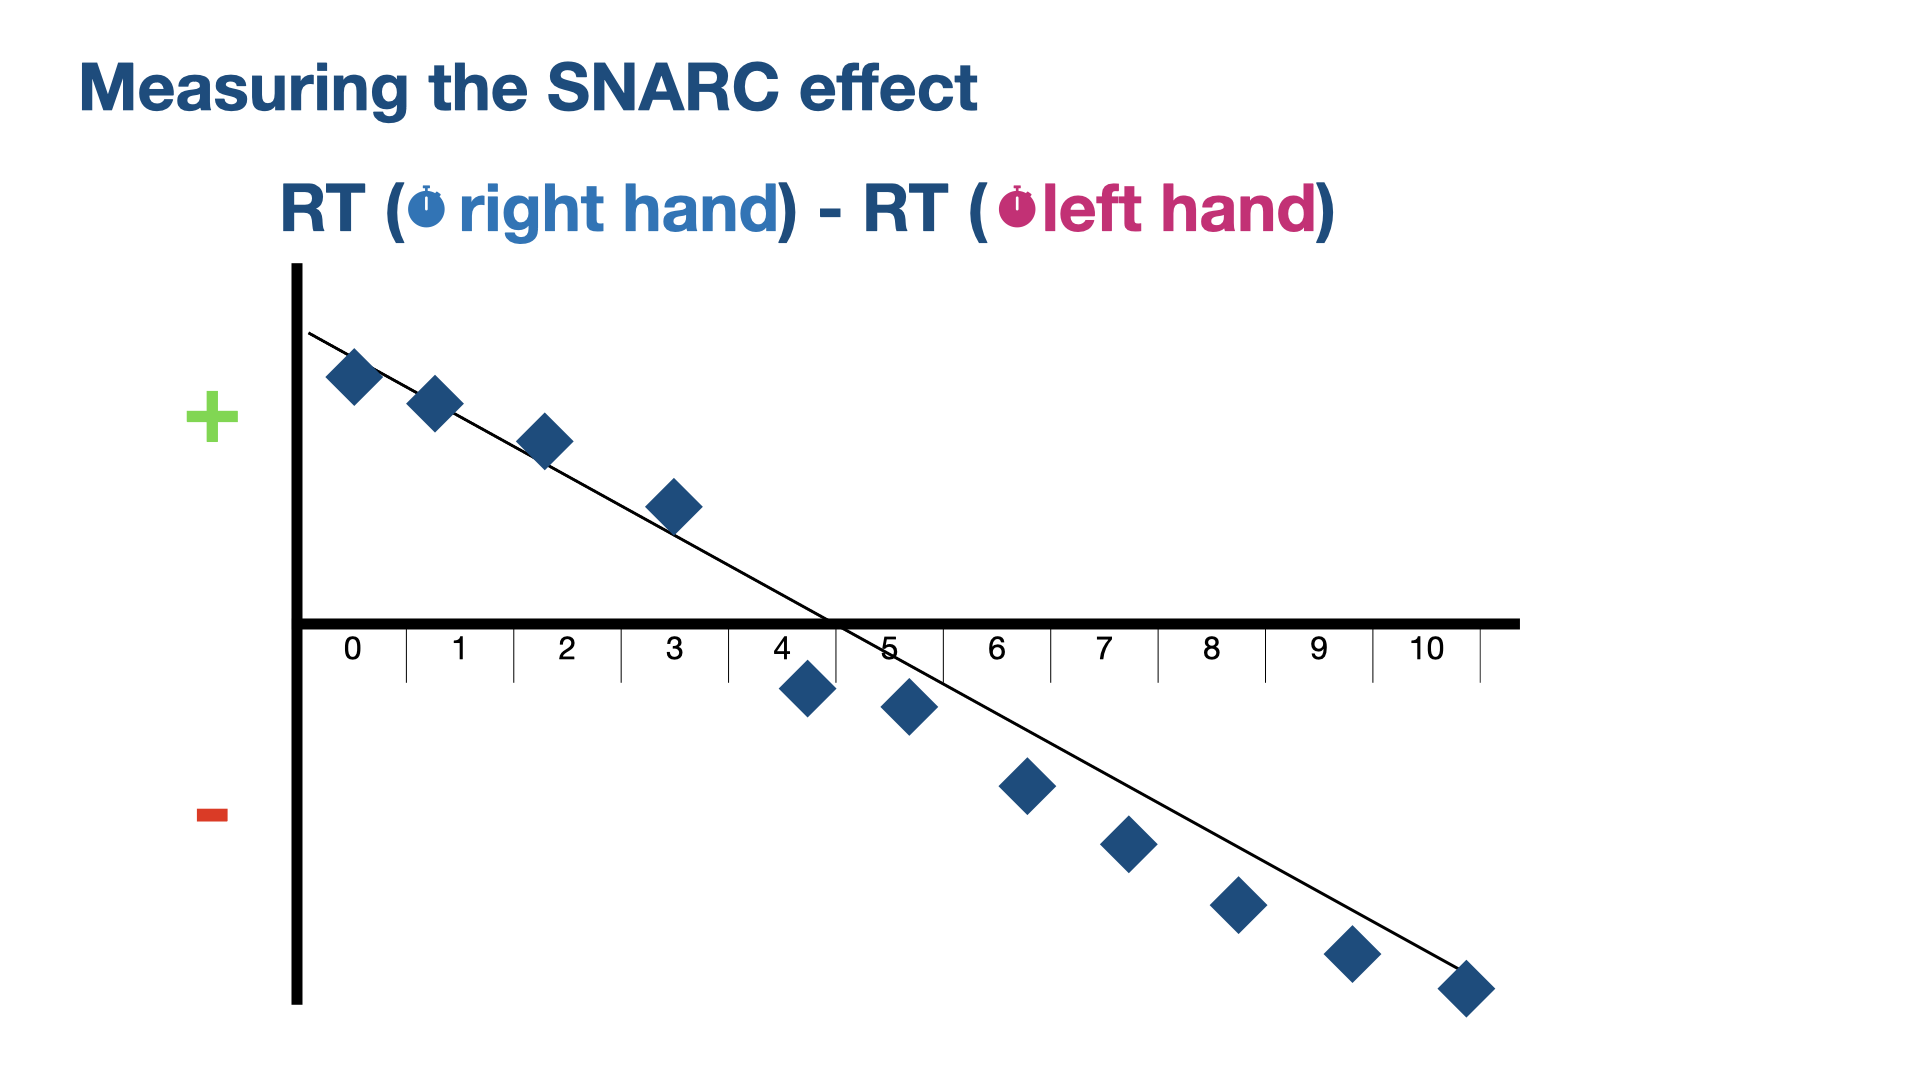 Illustration of the SNARC effect in the results of the odd/even judgement task. Reaction time deltas between right and left hand responses are positive for small, and negative for larger numbers, showing the SNARC effect.